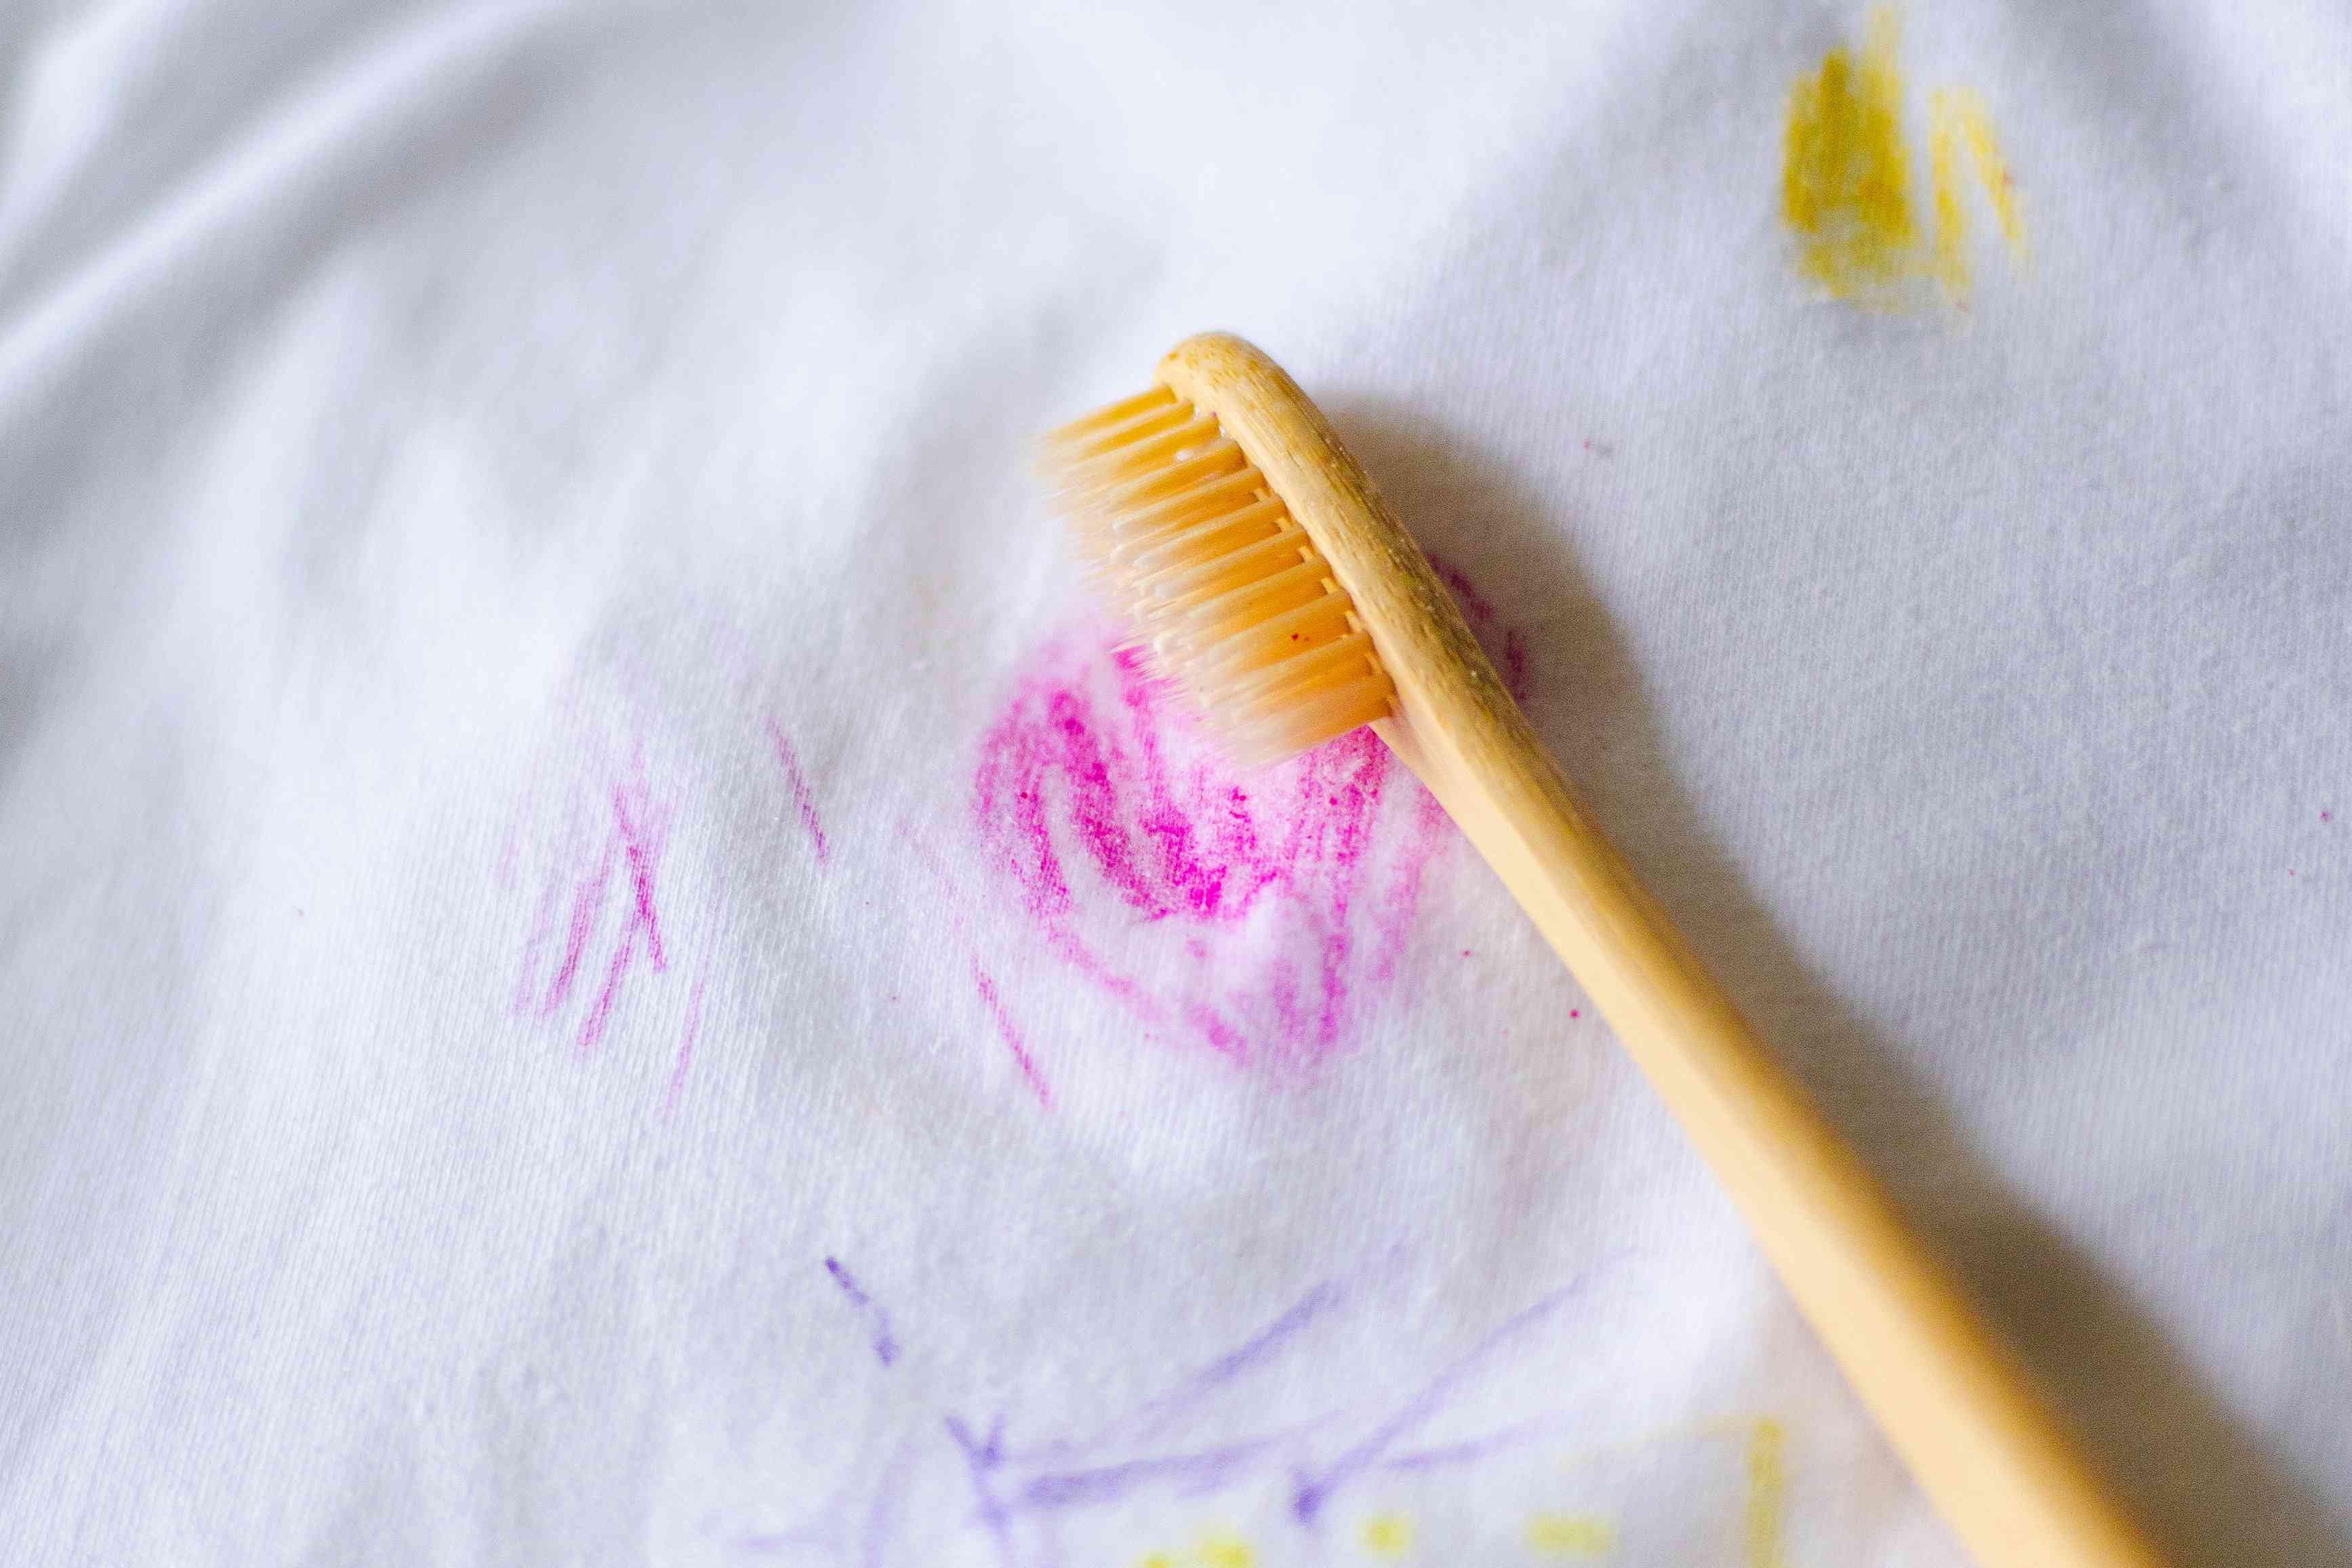 treating the stain with detergent